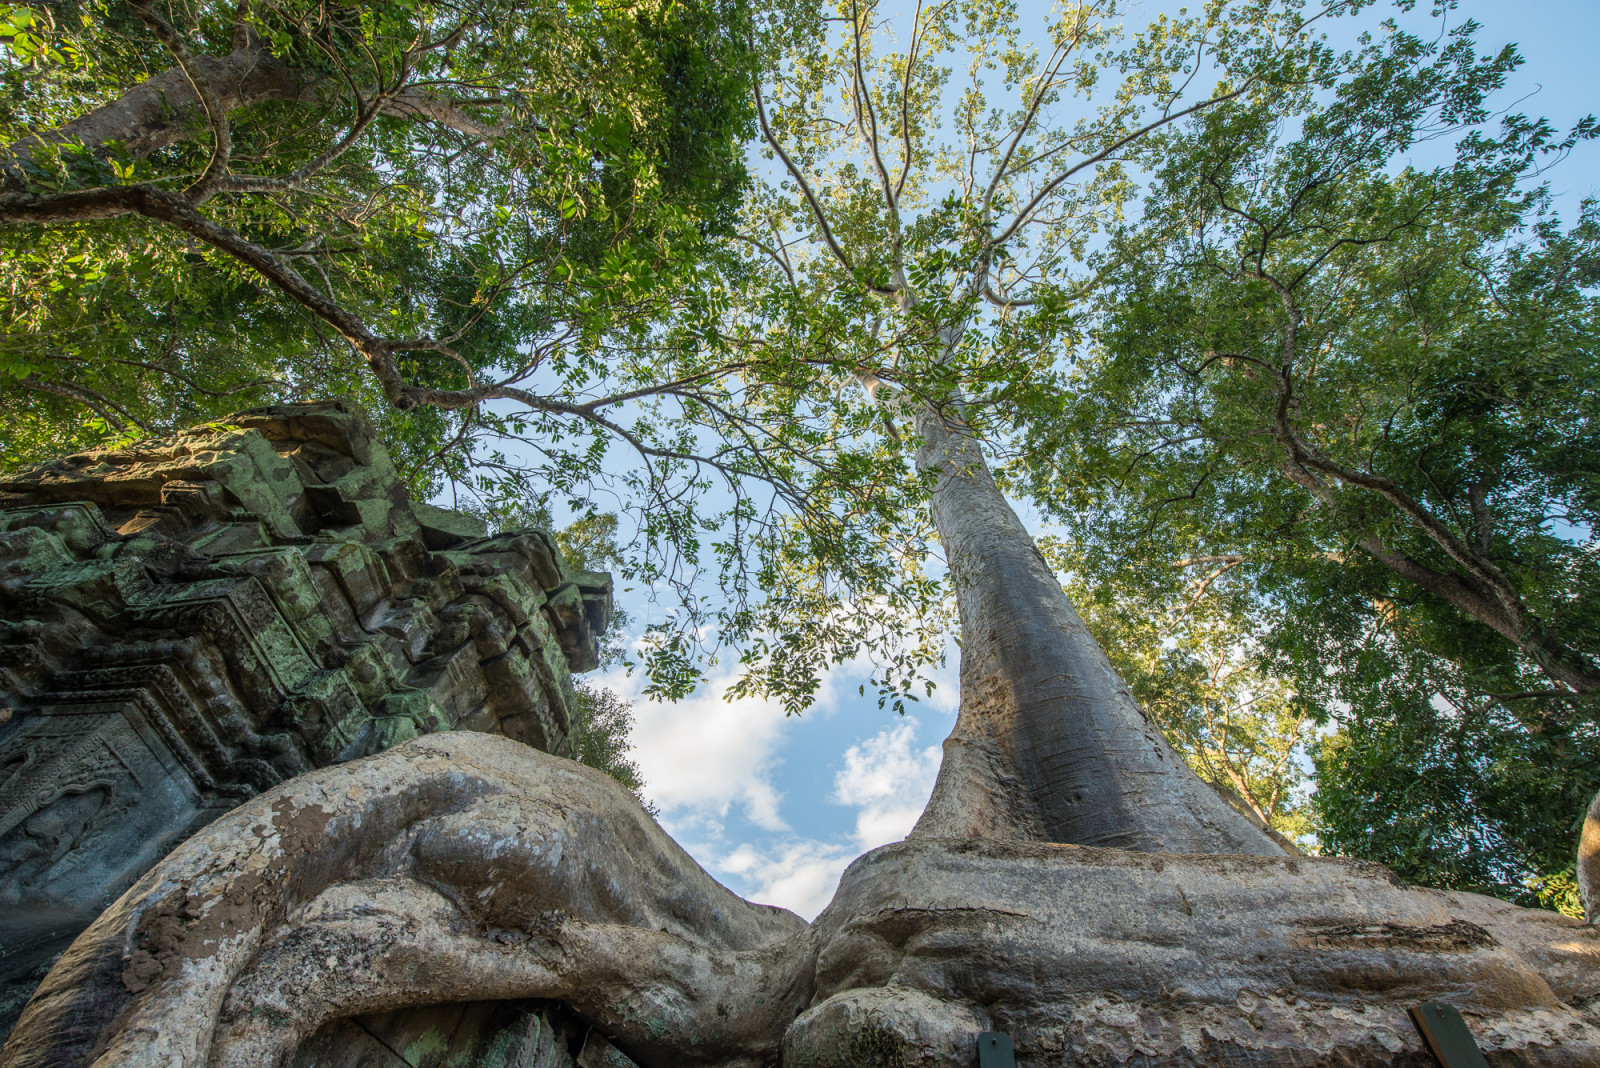 cambodia-photo-tours-angkor-wat-ta-prohm-temple-trees